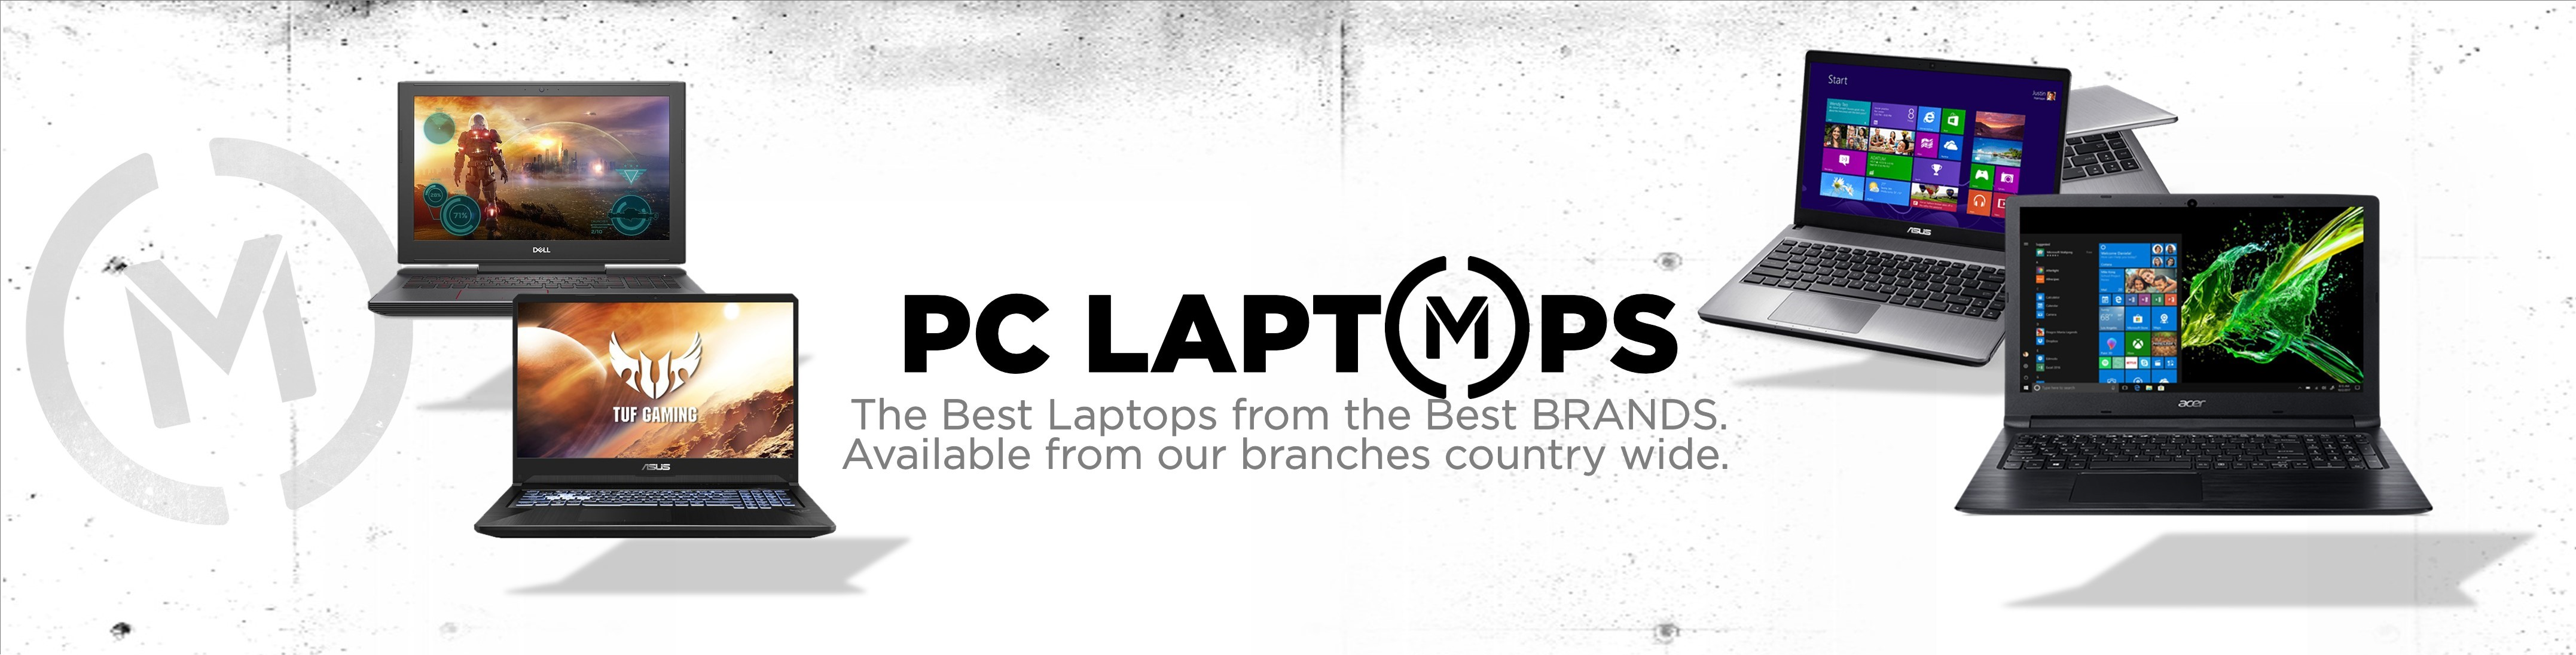 Matrix PC Laptops Banner